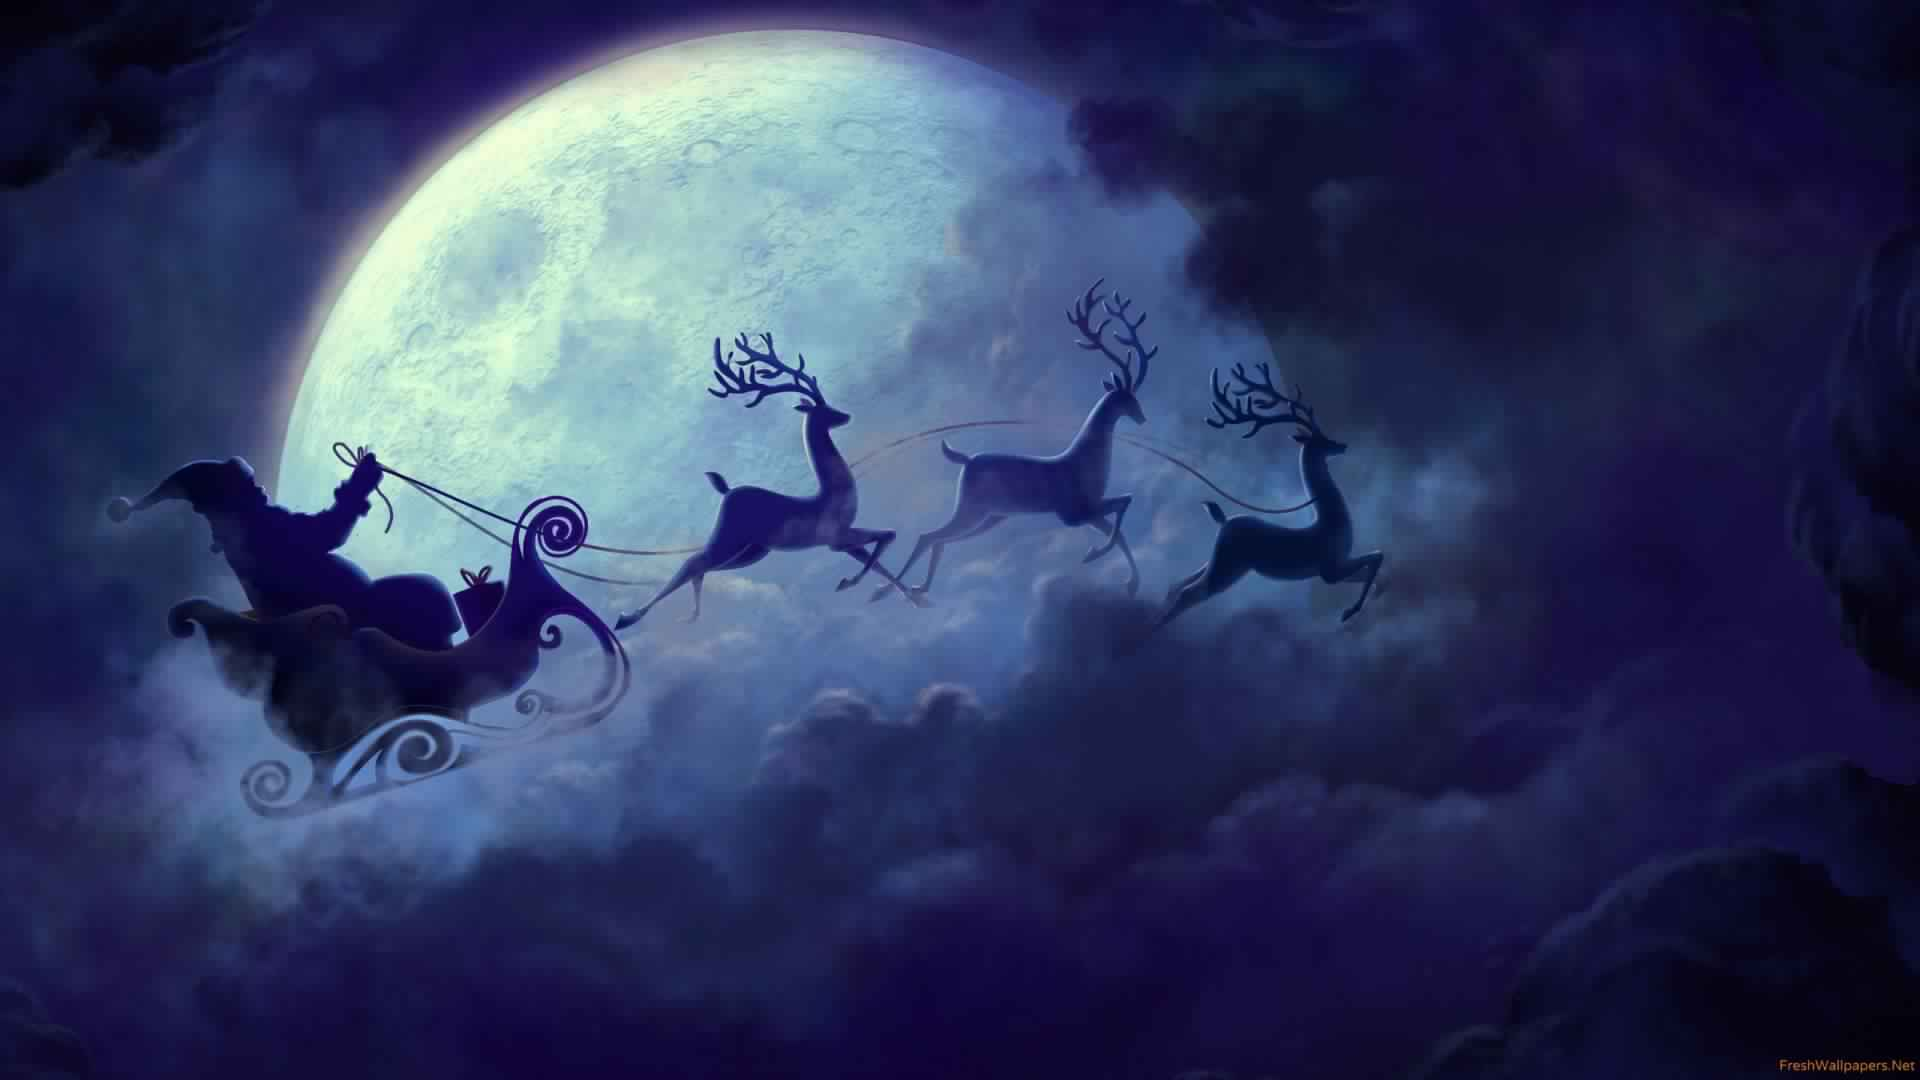 Best Santa Wallpaper Santas Sleigh And His Reindeer Full Moon Night 1920×1080